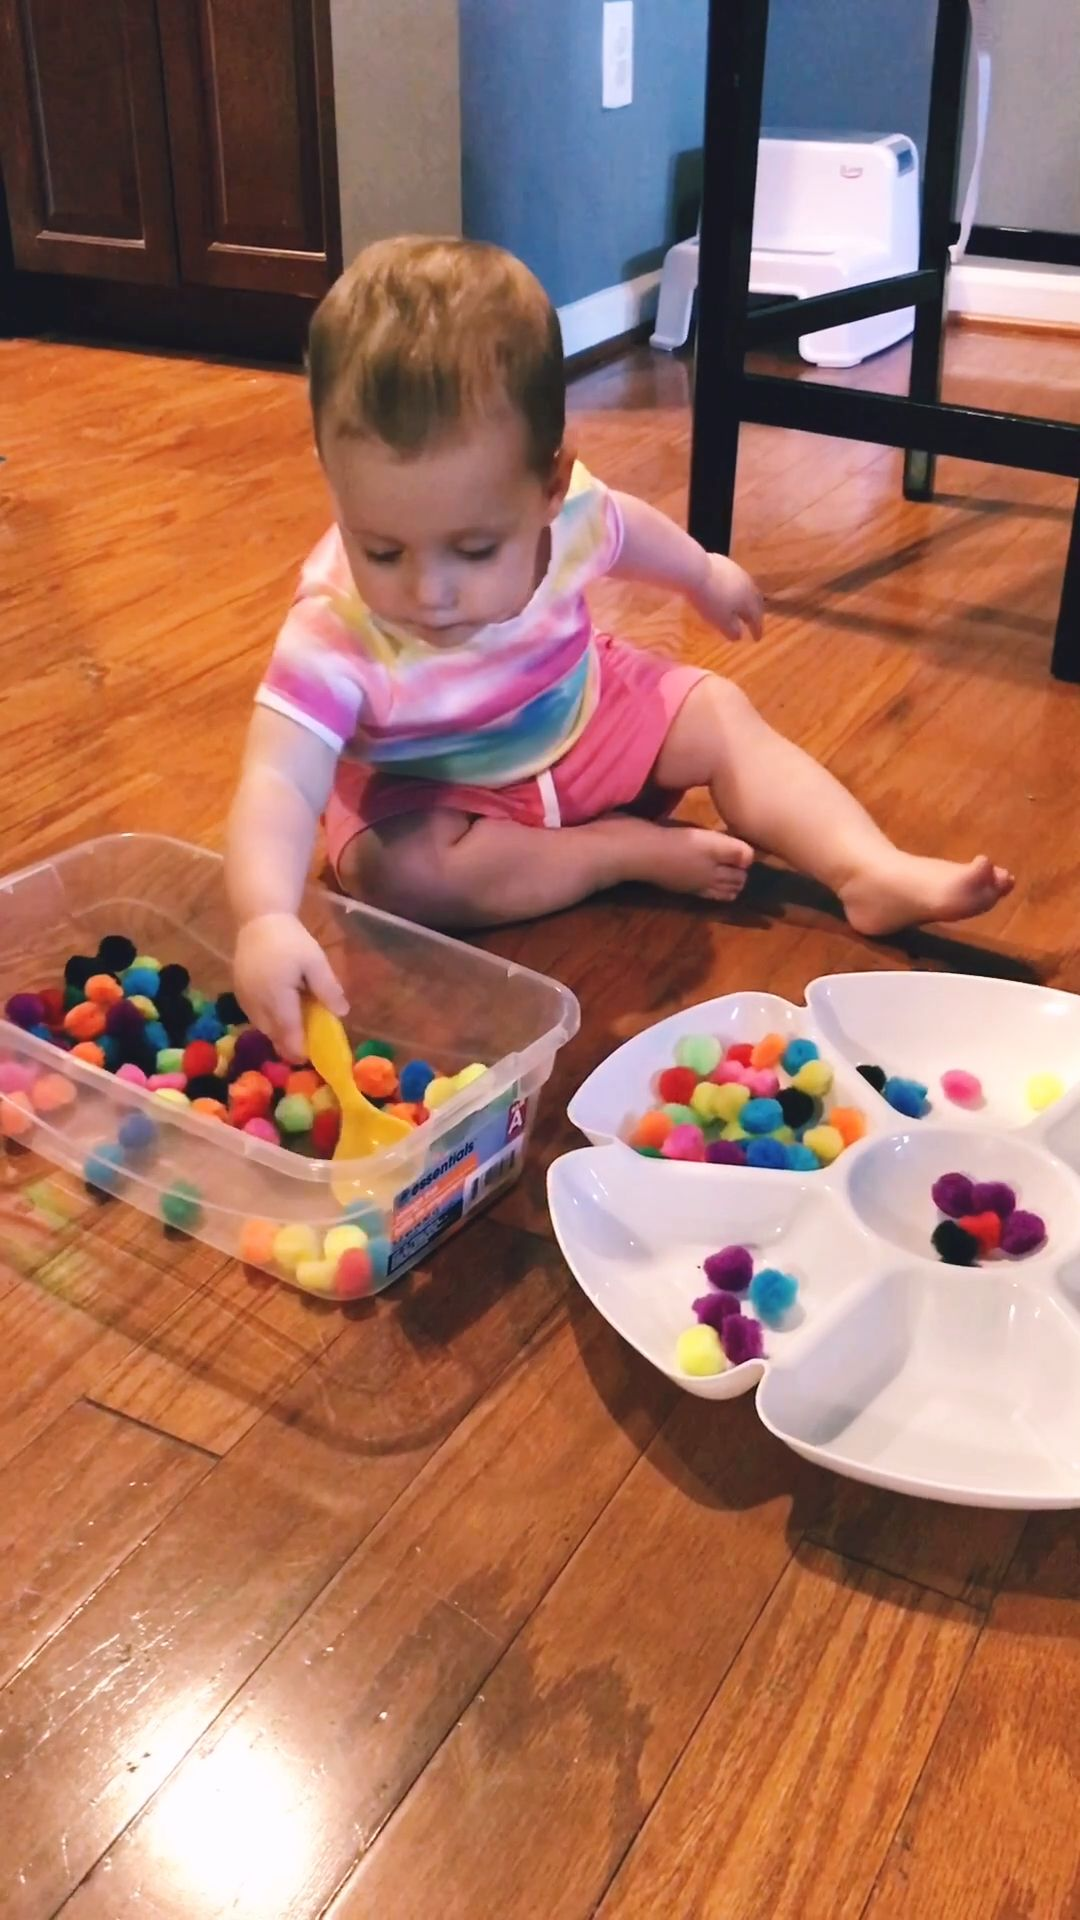 POMPOM SCOOP  TRANSFER COLOR SORT Easy sensory bin idea for toddlers  Scoop transfer and sort pompoms by color using this cute Dollar Tree serving tray Handeye coordinati...